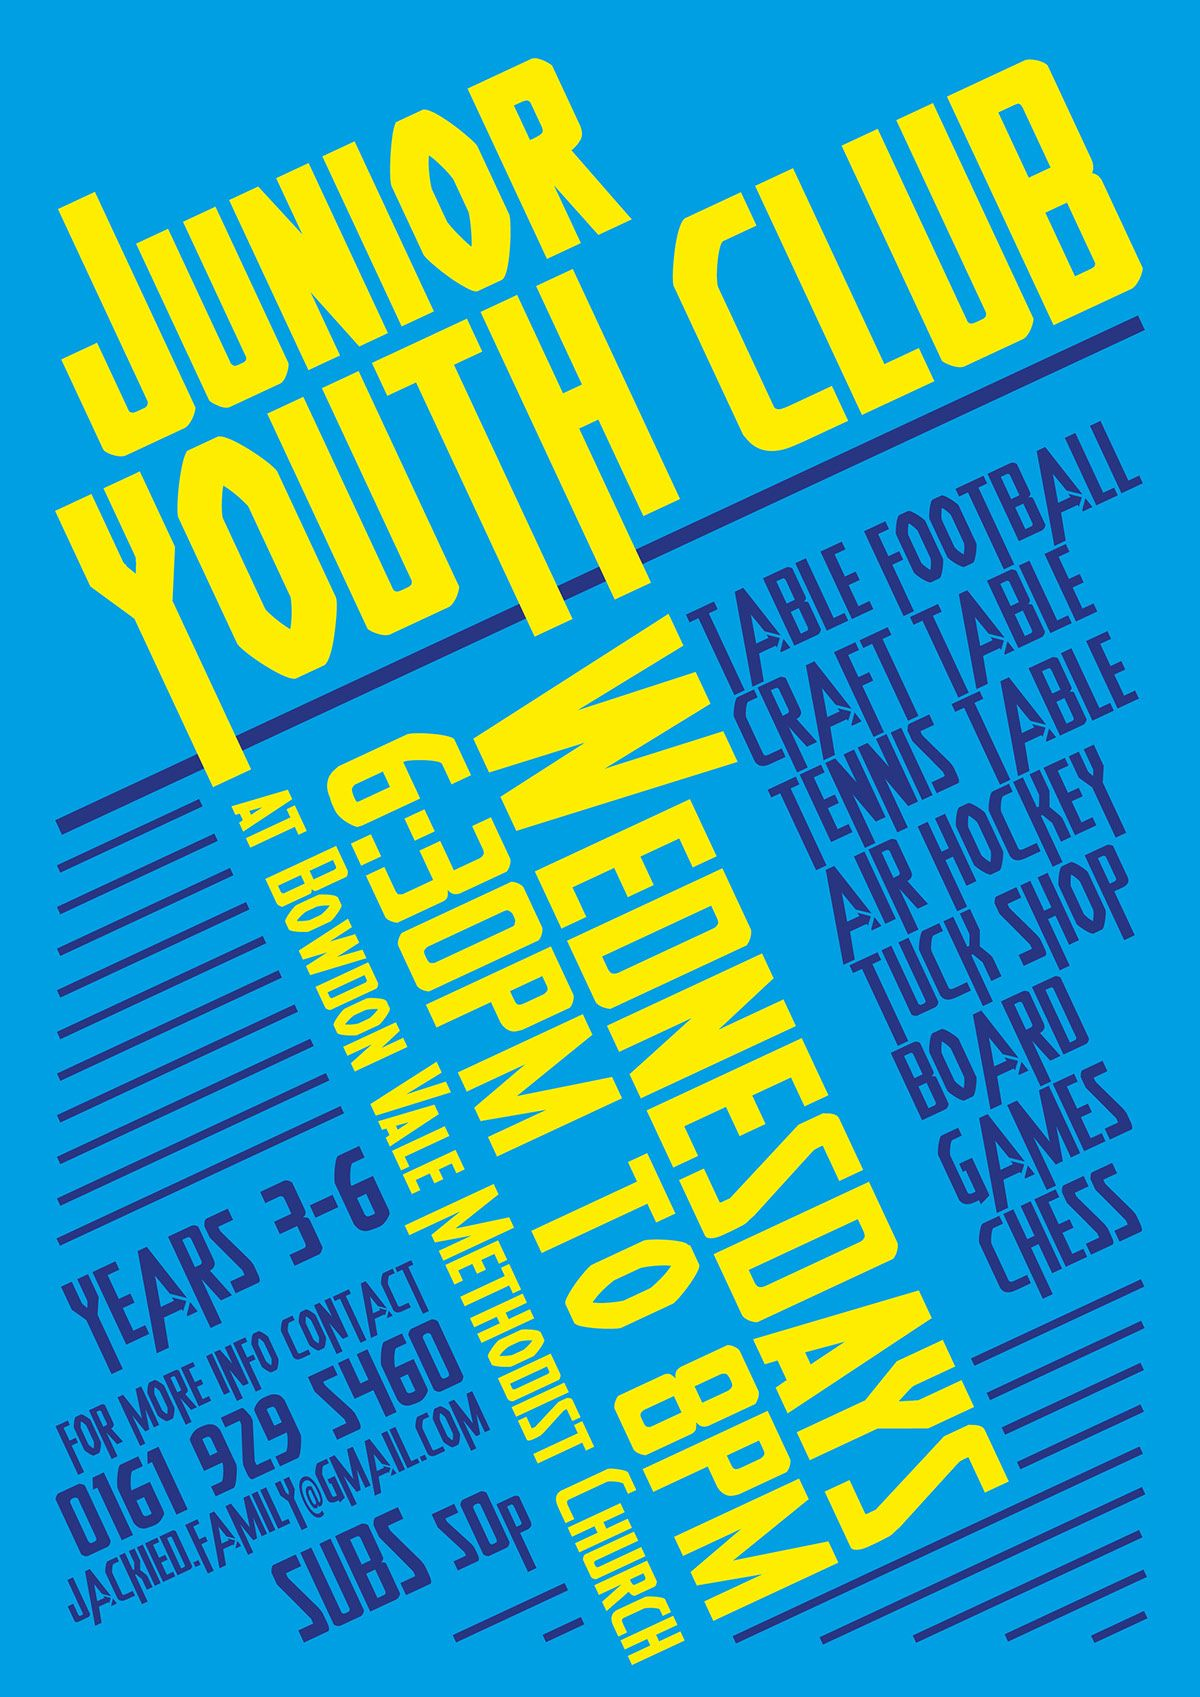 Poster design for youth - Bowdon Junior Youth Club Poster By Mrsbee Co Uk